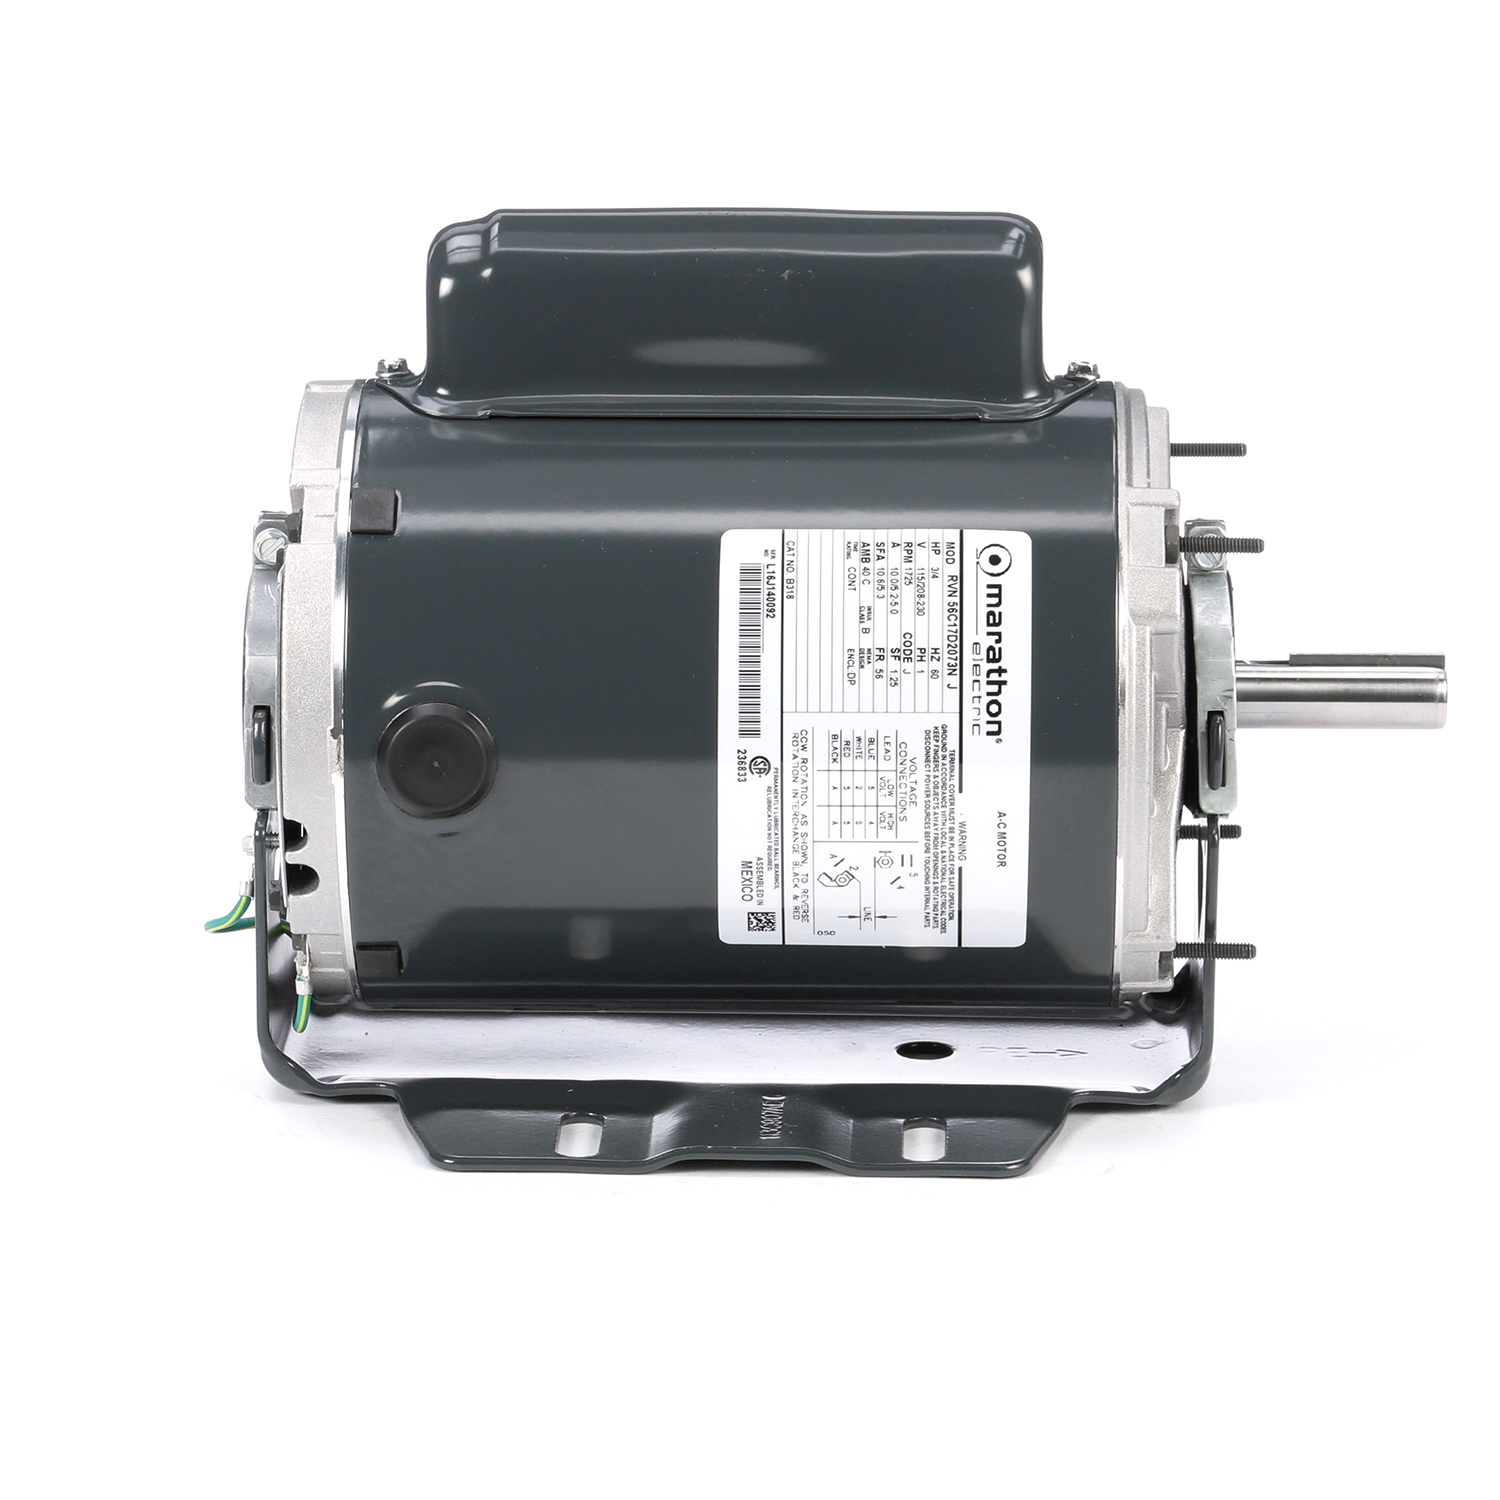 56 FR Capacitor Start Fan and Blower Motor, 3/4 HP, 1725 RPM, 115